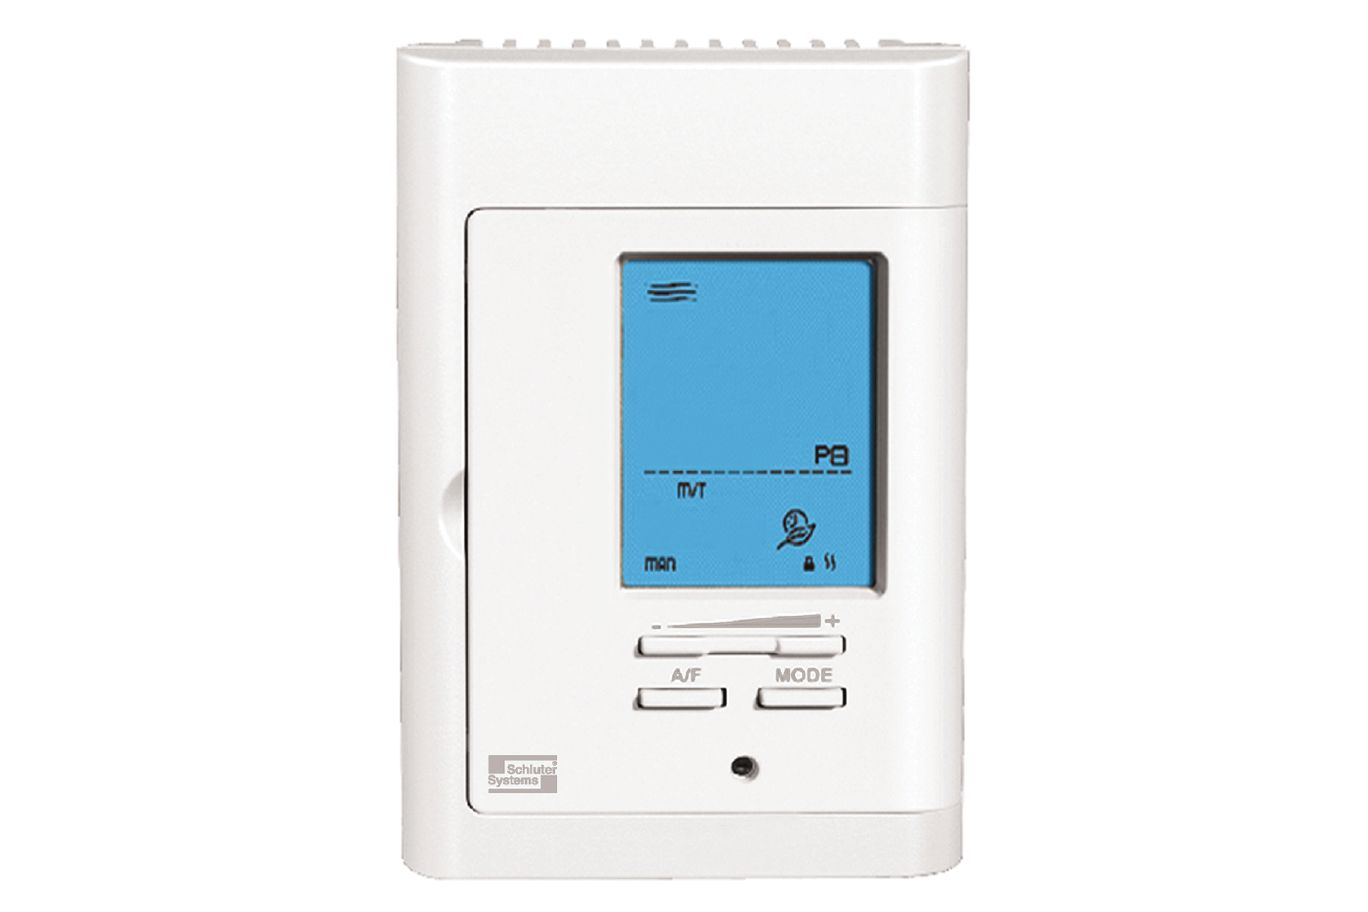 DitraHeat-Thermostat-Programmable.jpg